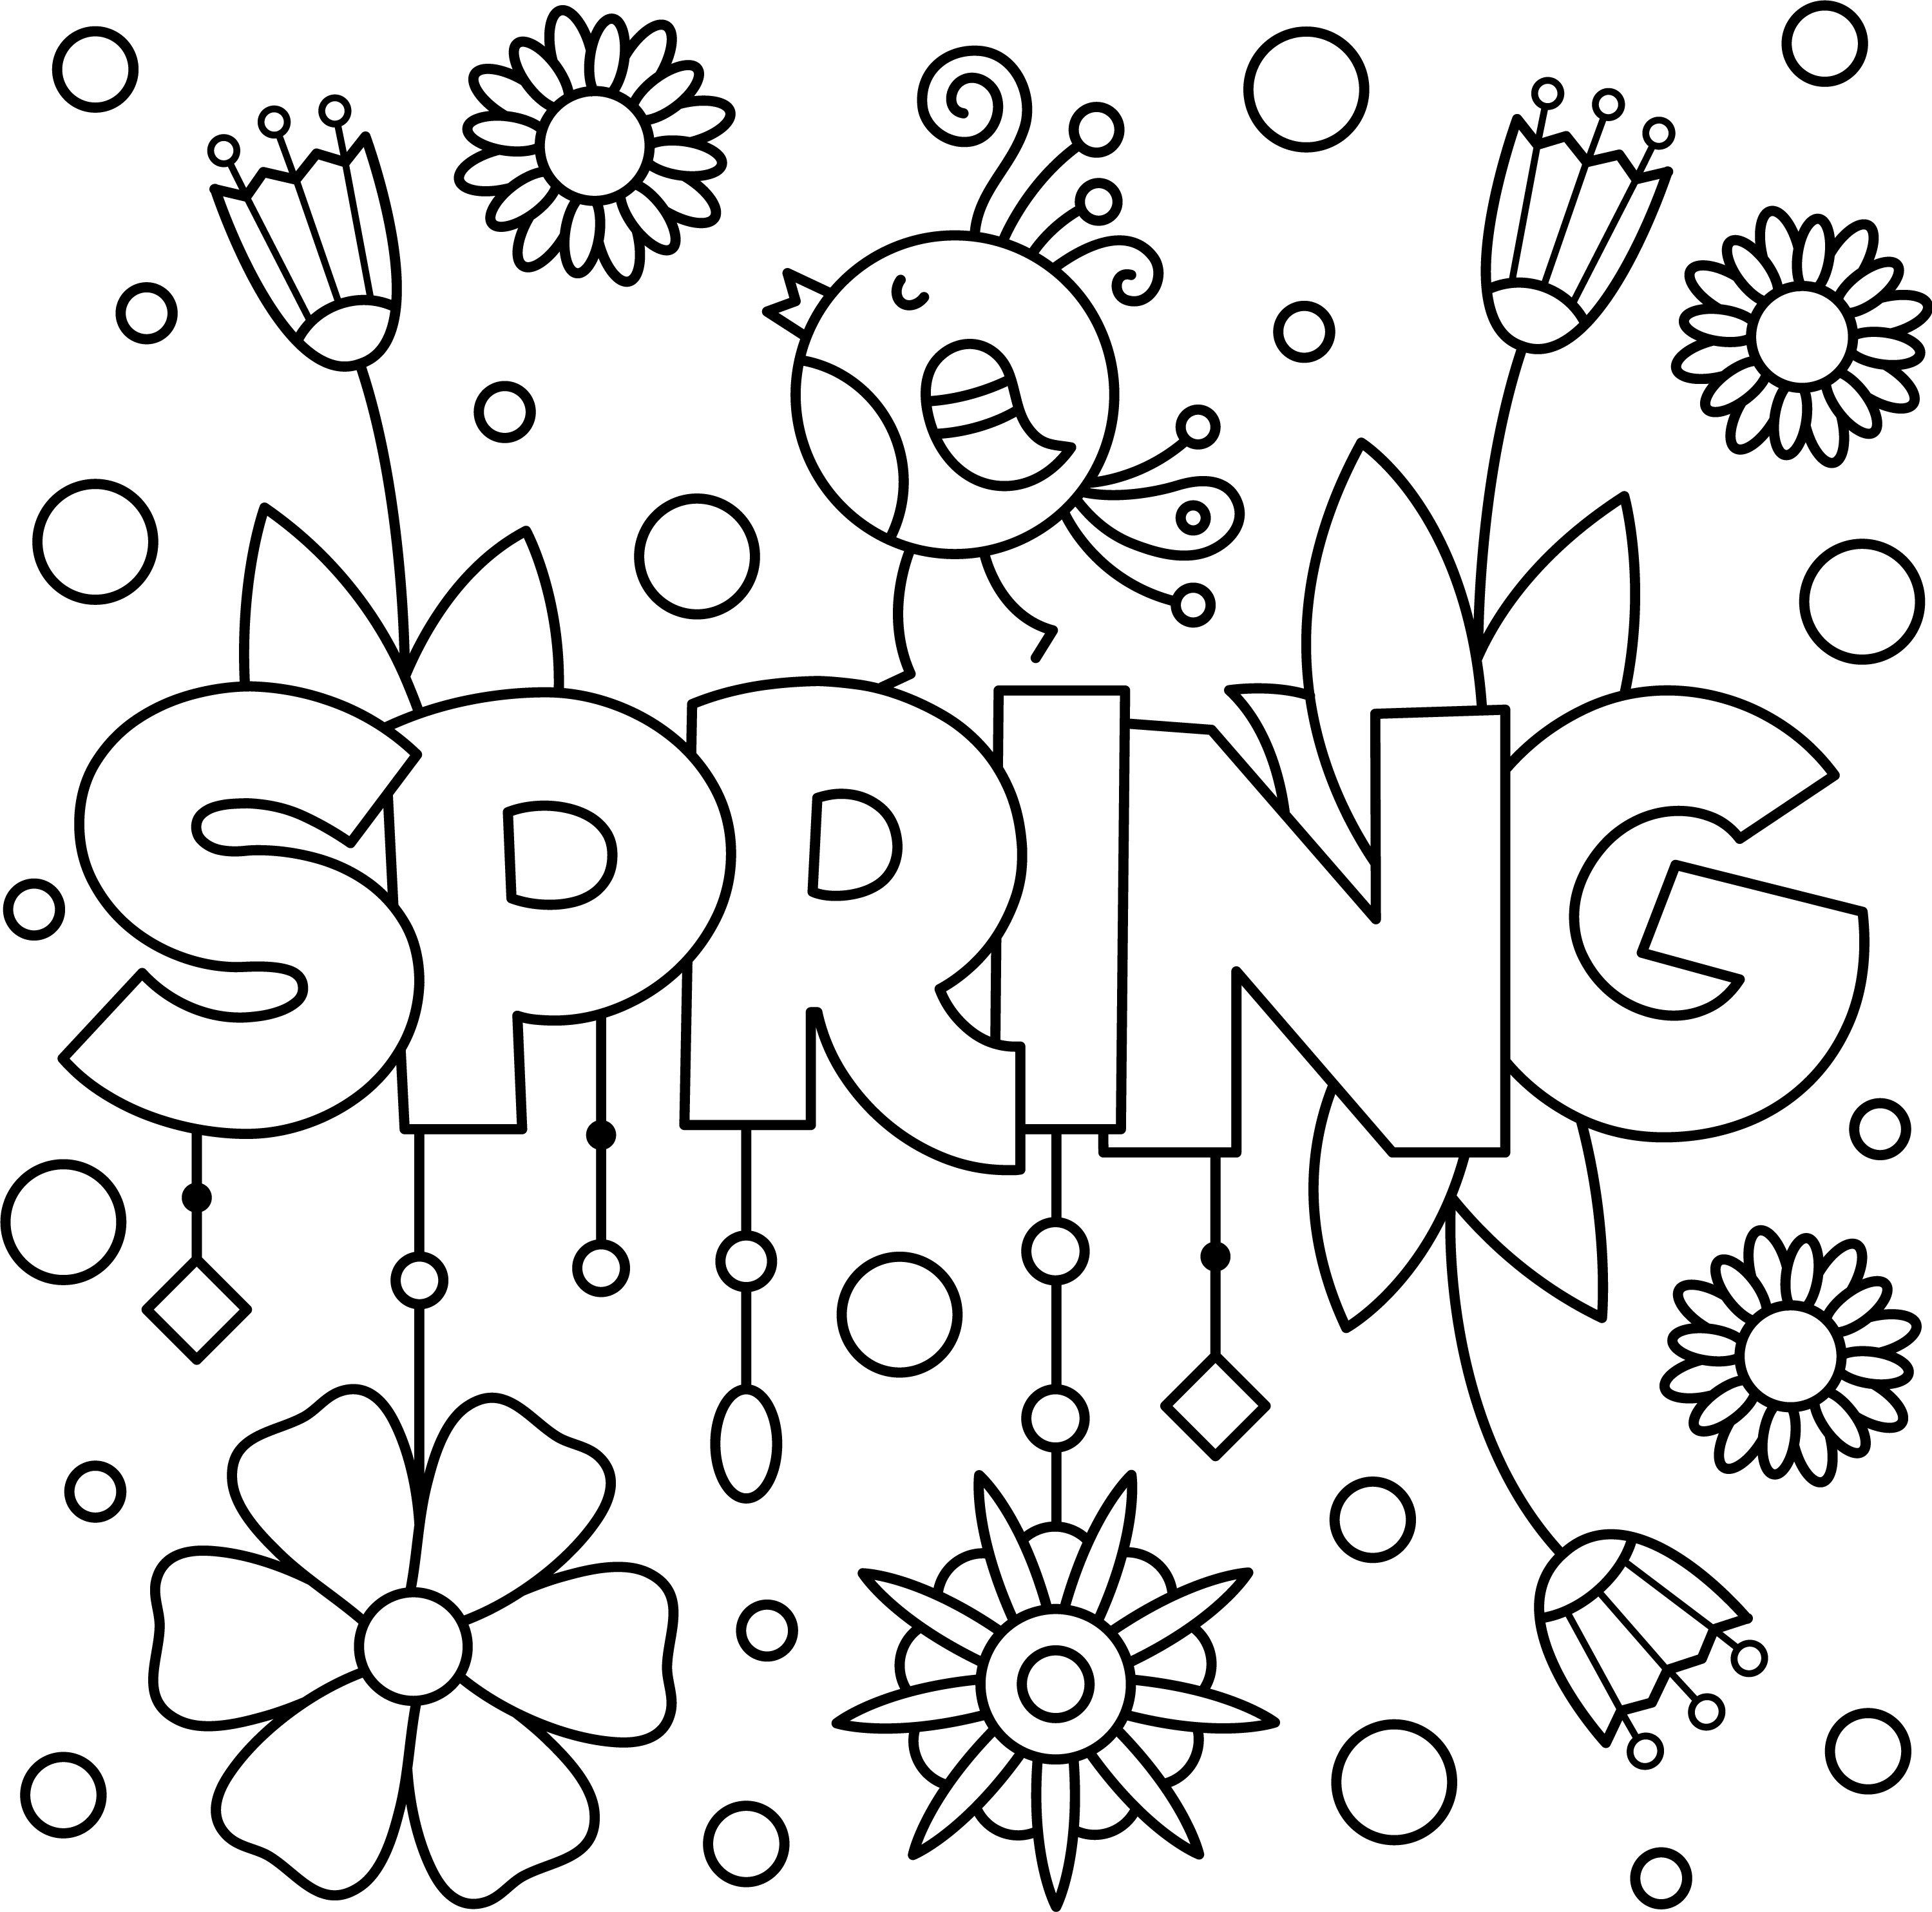 Fun Spring Colouring Page Printable Spring Coloring Pages